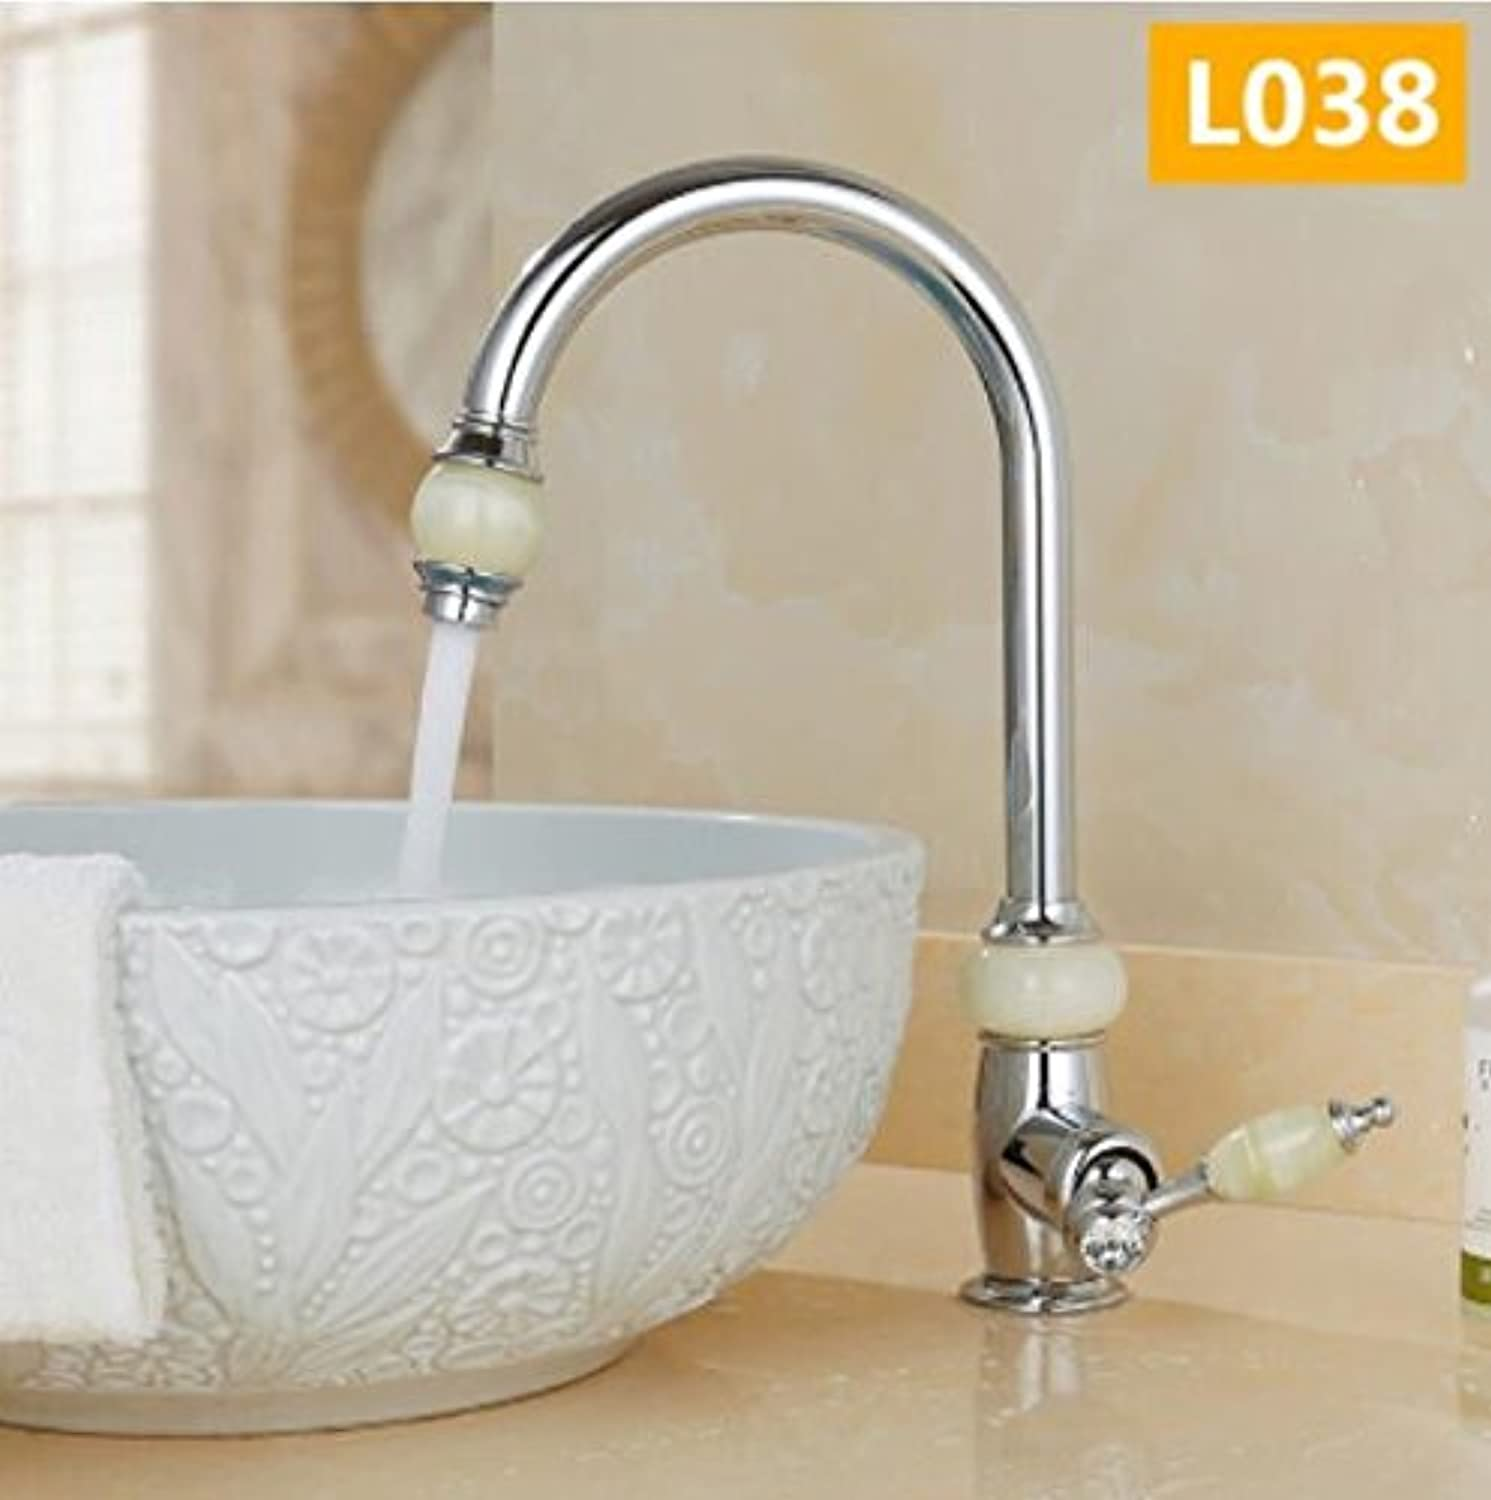 Decorry European Style Natural Jade All Copper Stand Upper Basin Cold Hot Water Faucet Kitchen Sink Can redate gold Antique Tap Ceramic Disc Spool.